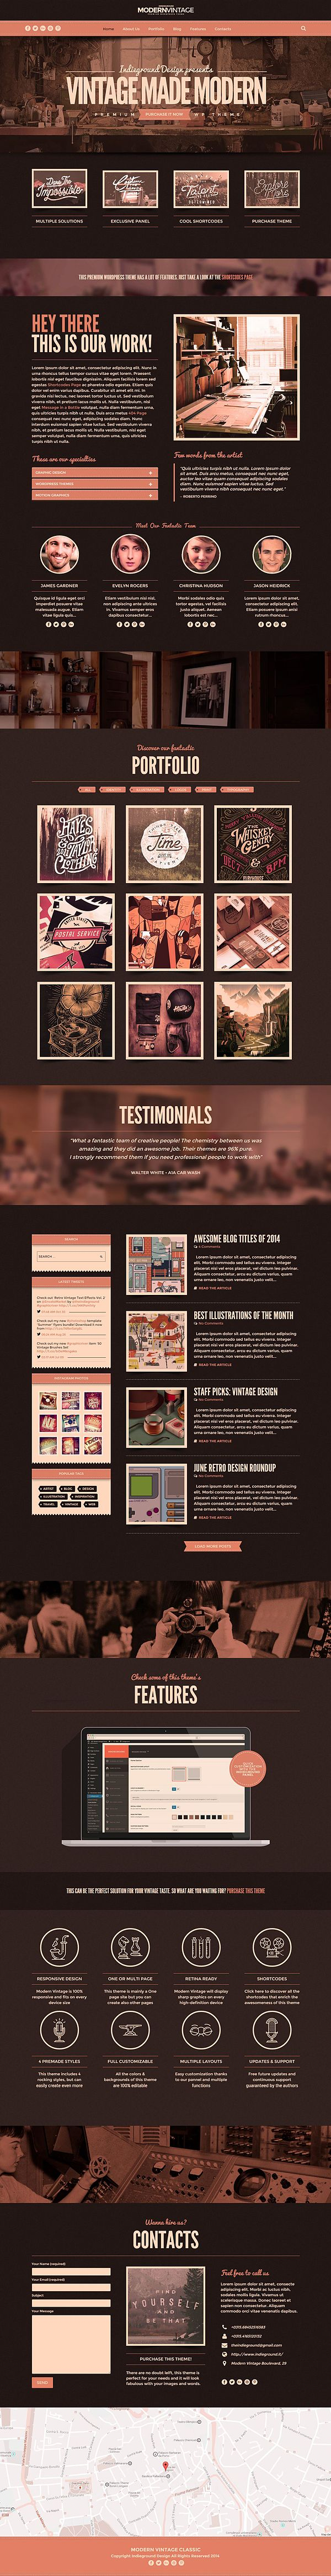 Love the color theme. Would be well suited for a hiphop record label or…